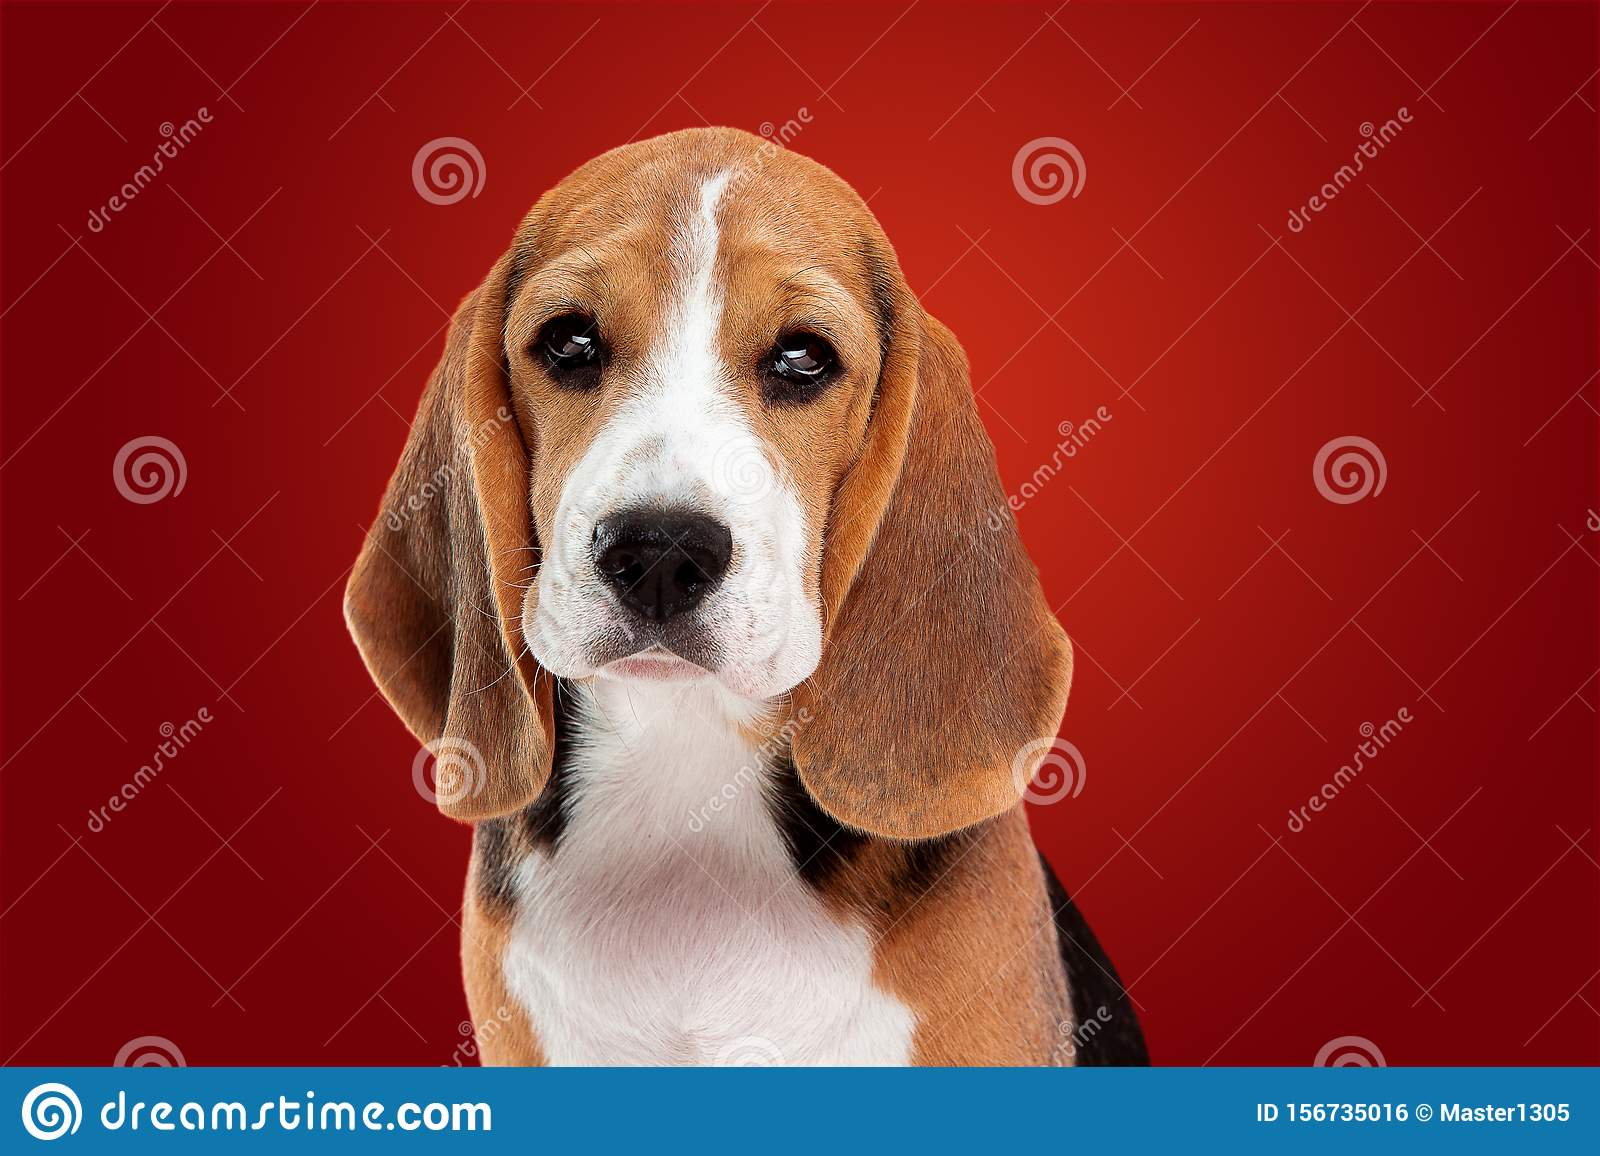 Studio Shot Of Beagle Puppy On Red Studio Background Stock Photo Image Of Cute Fluffy 156735016